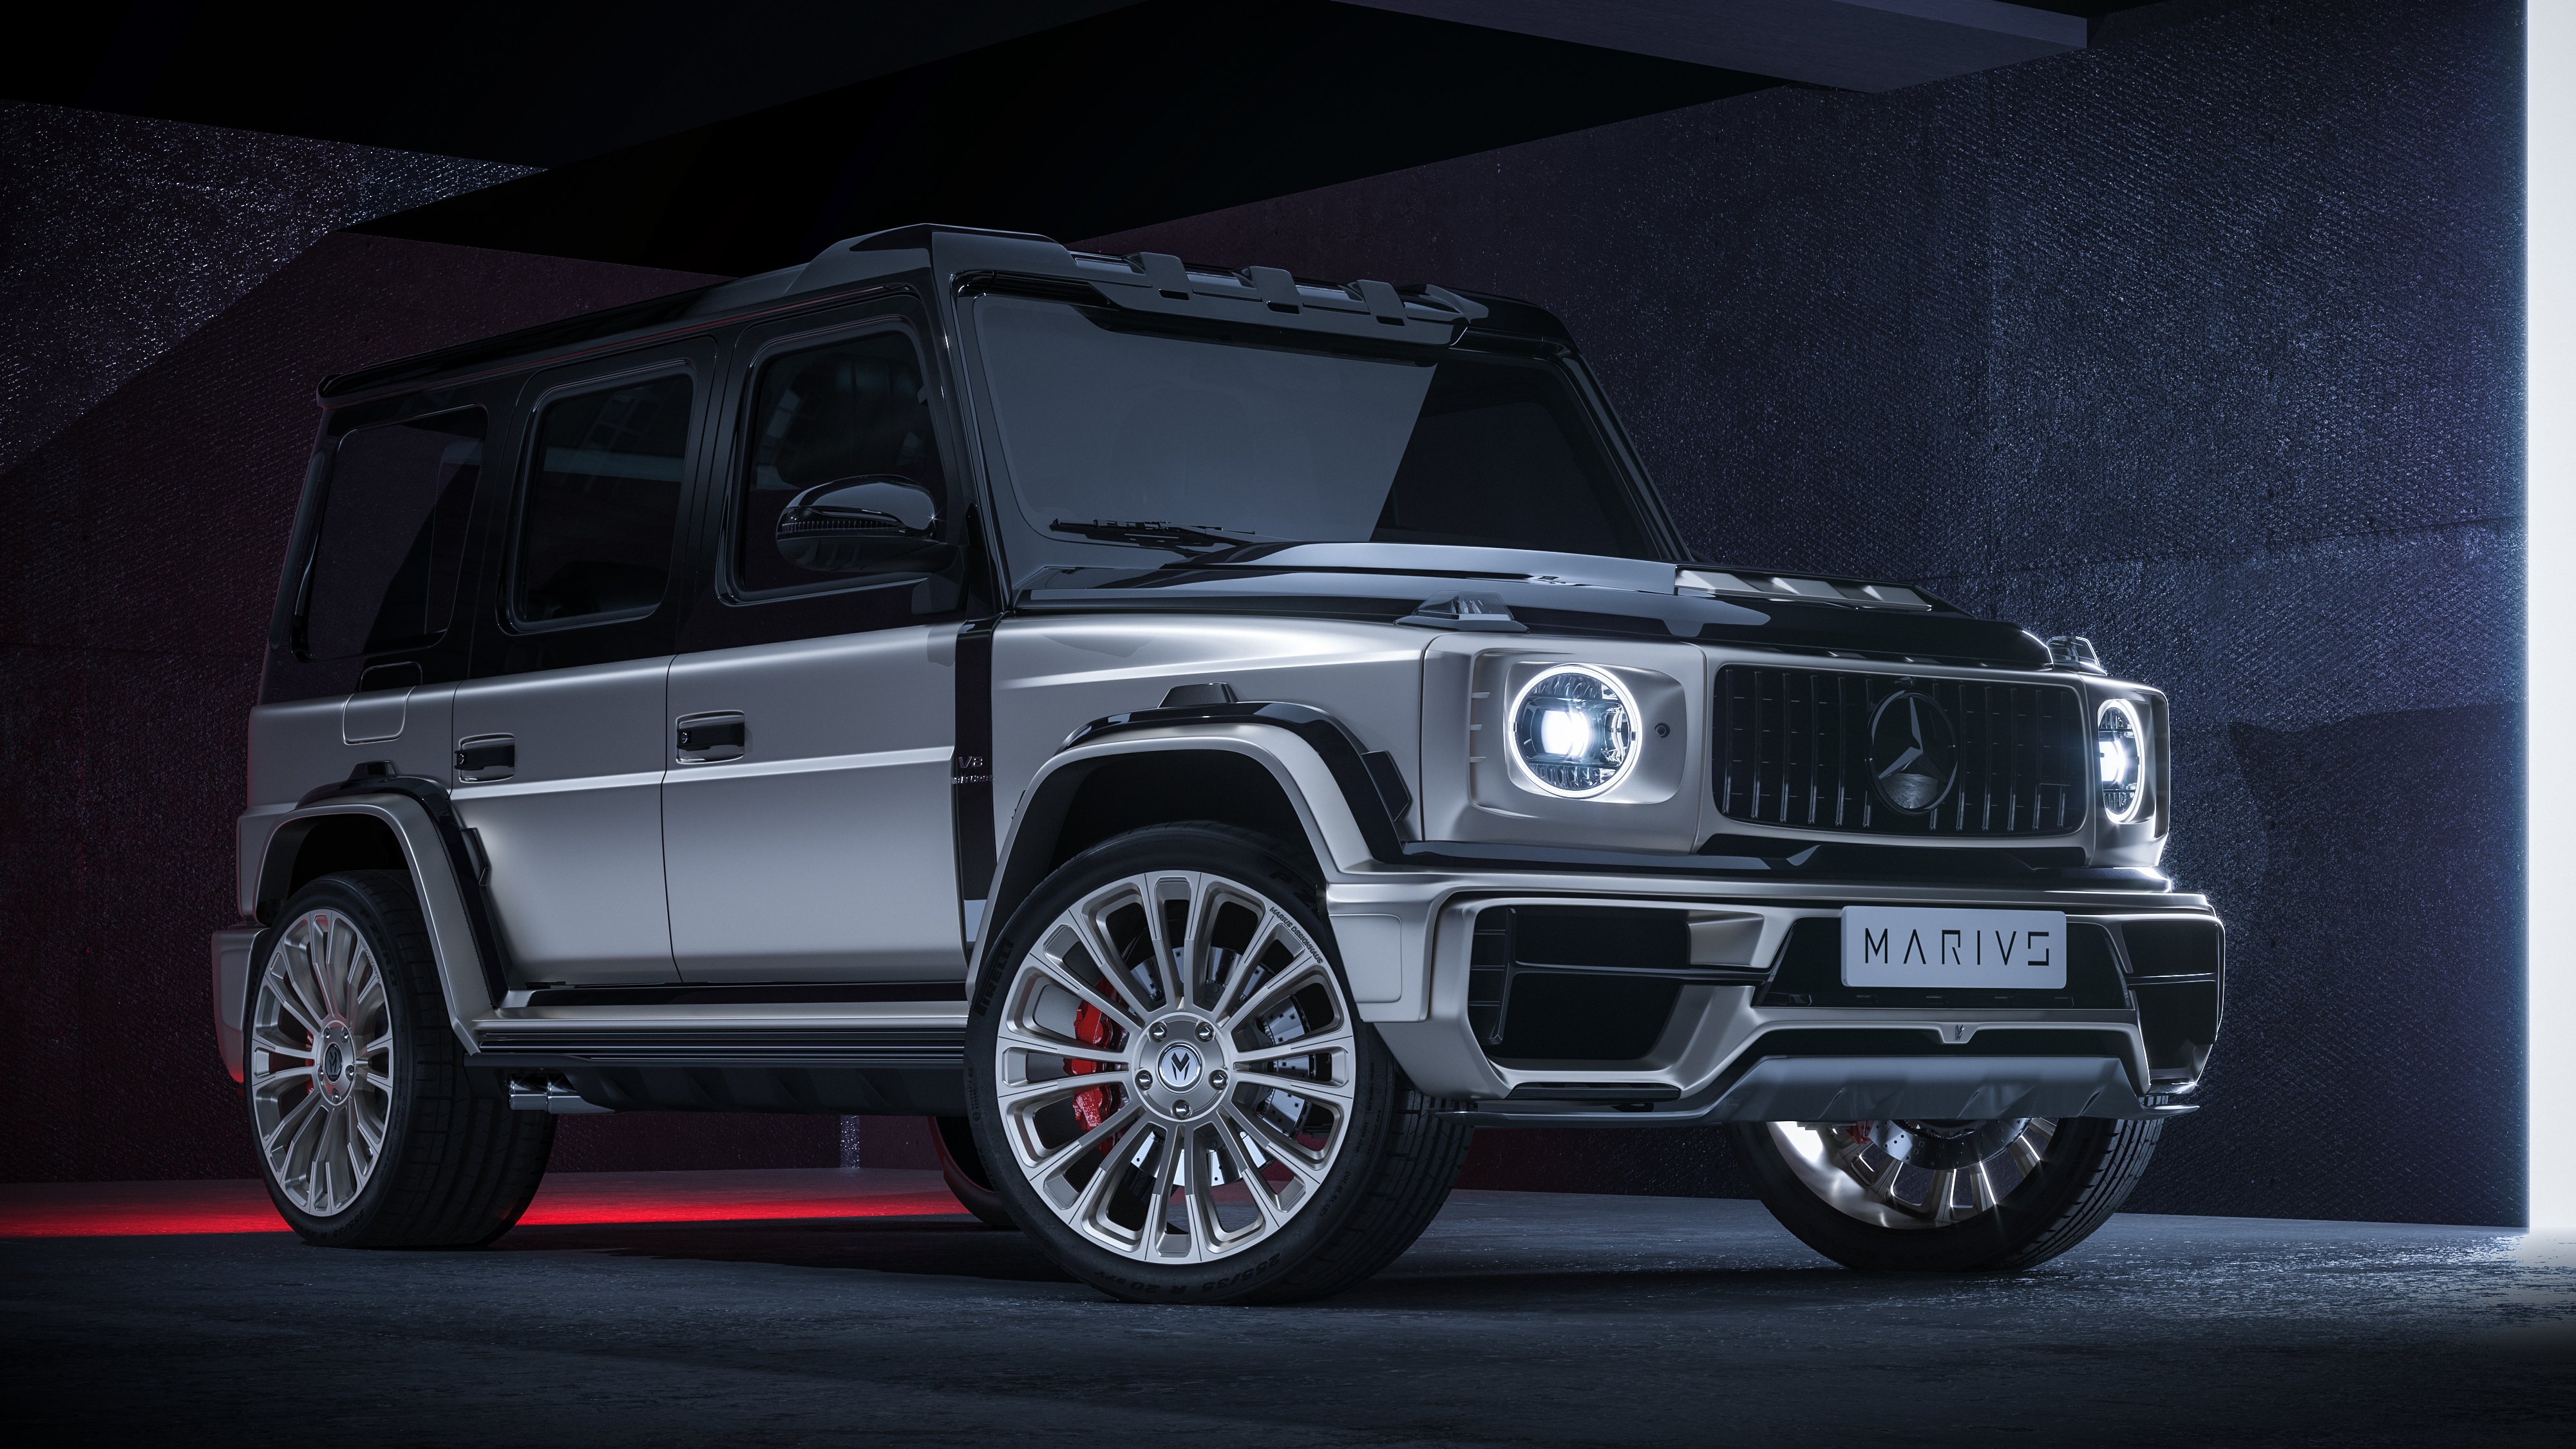 Mercedes Benz G Class Md2 Shows Bold Widebody Look Autoevolution